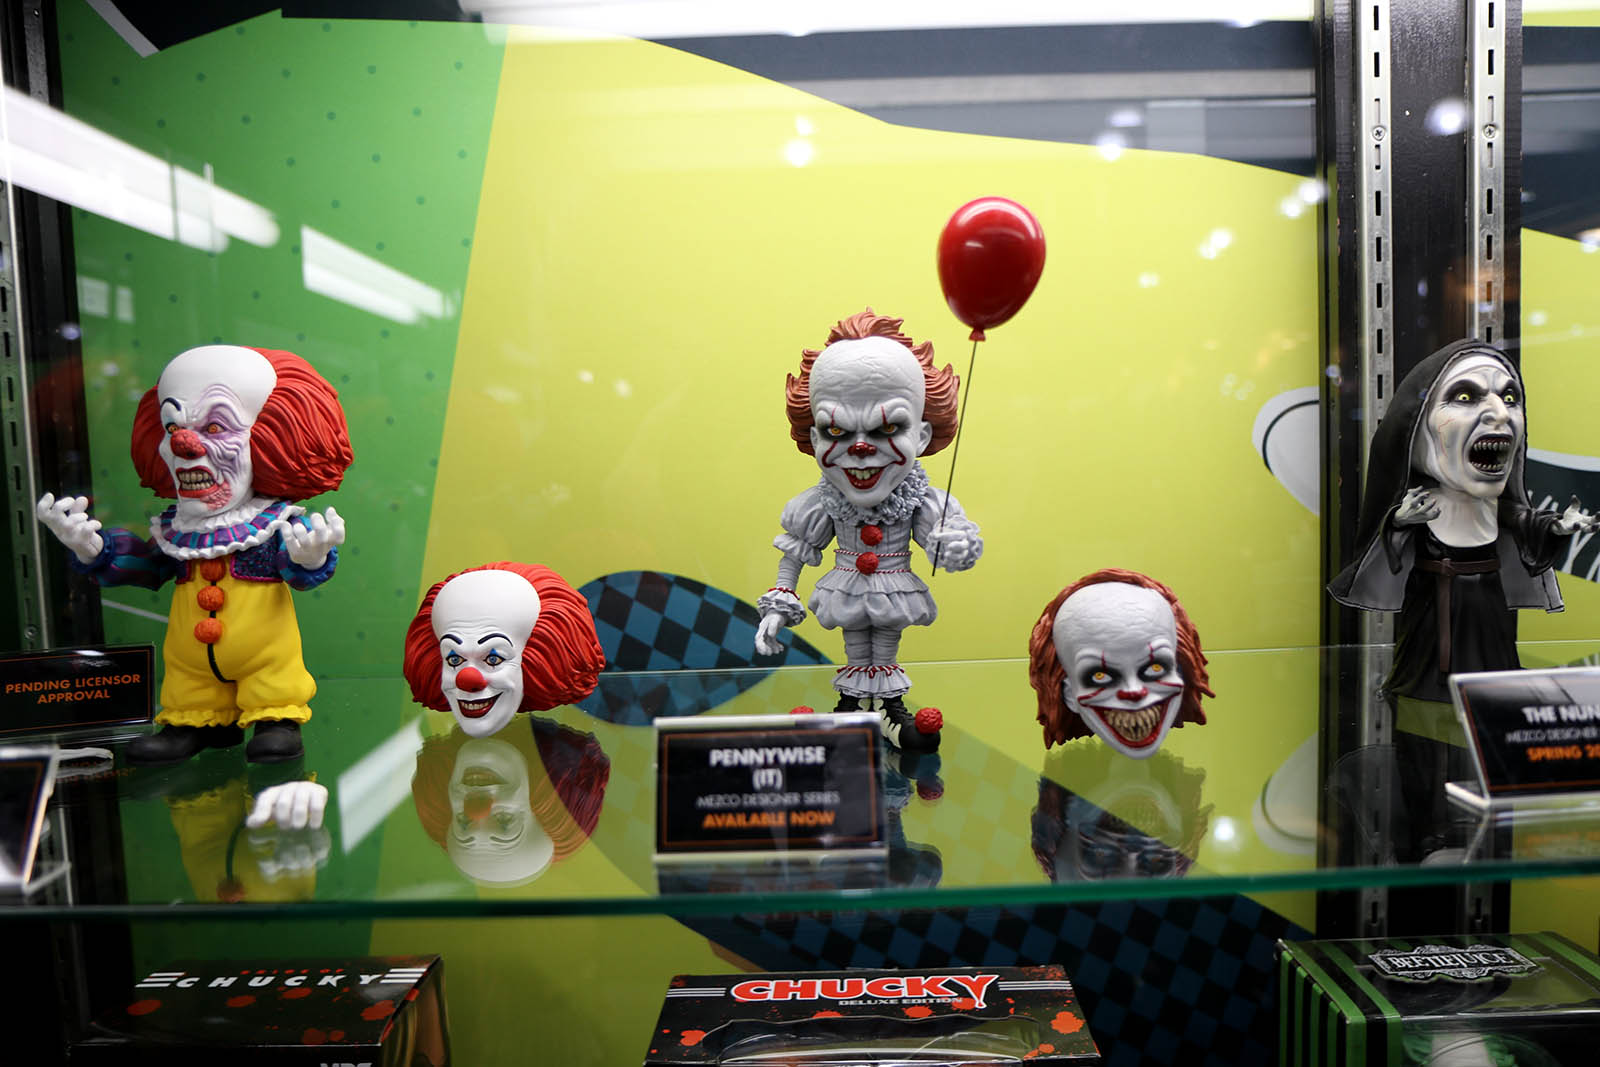 Mezco at Toy Fair 2020: From horror to heroes | The Nerdy